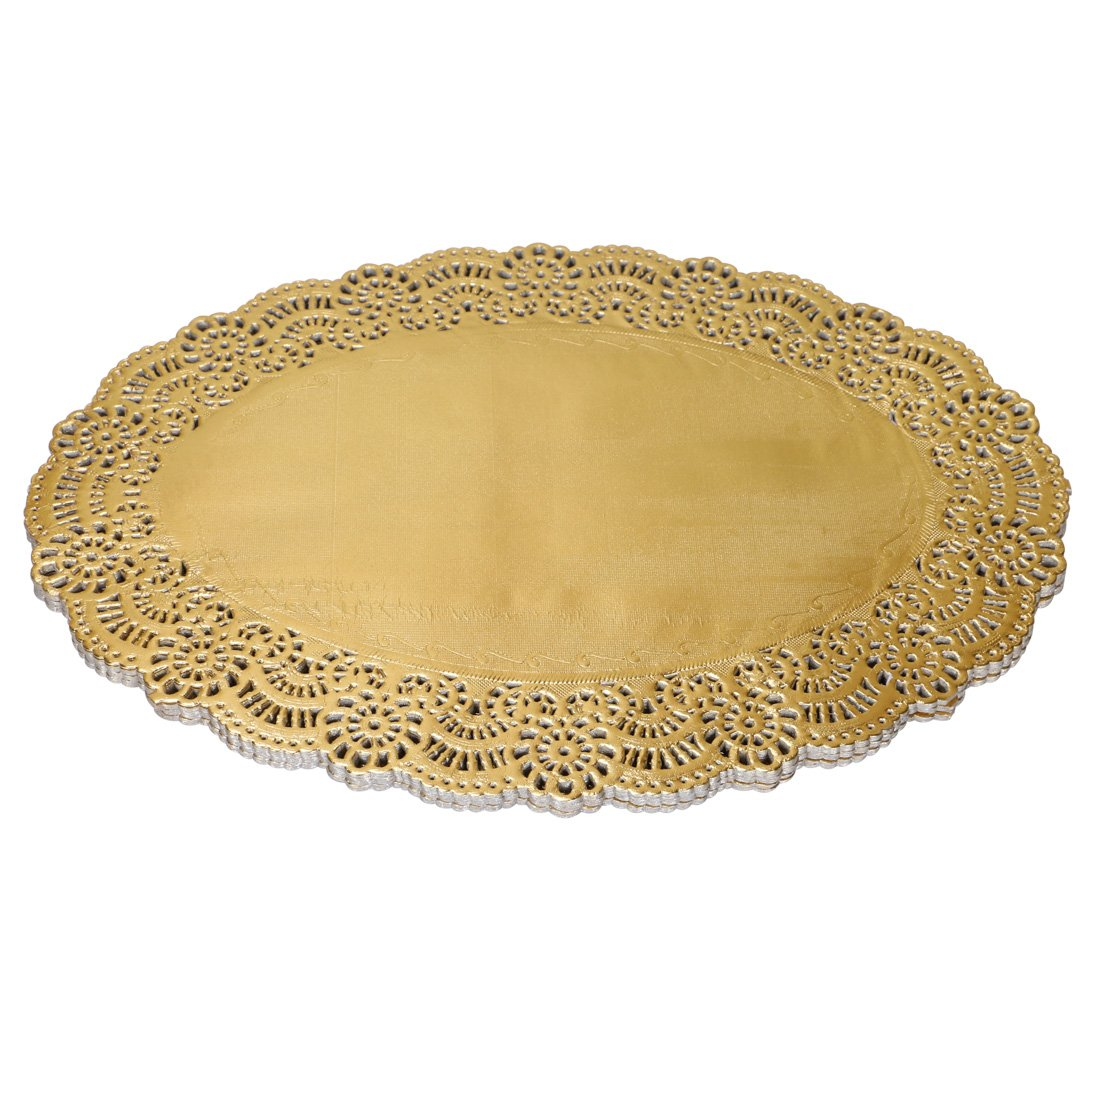 Geeklife Oval Lace Paper Placemats, Gold Foil Placemats, Disposable Paper Doilies, 10.5 x 13.8 Inches,60 Count